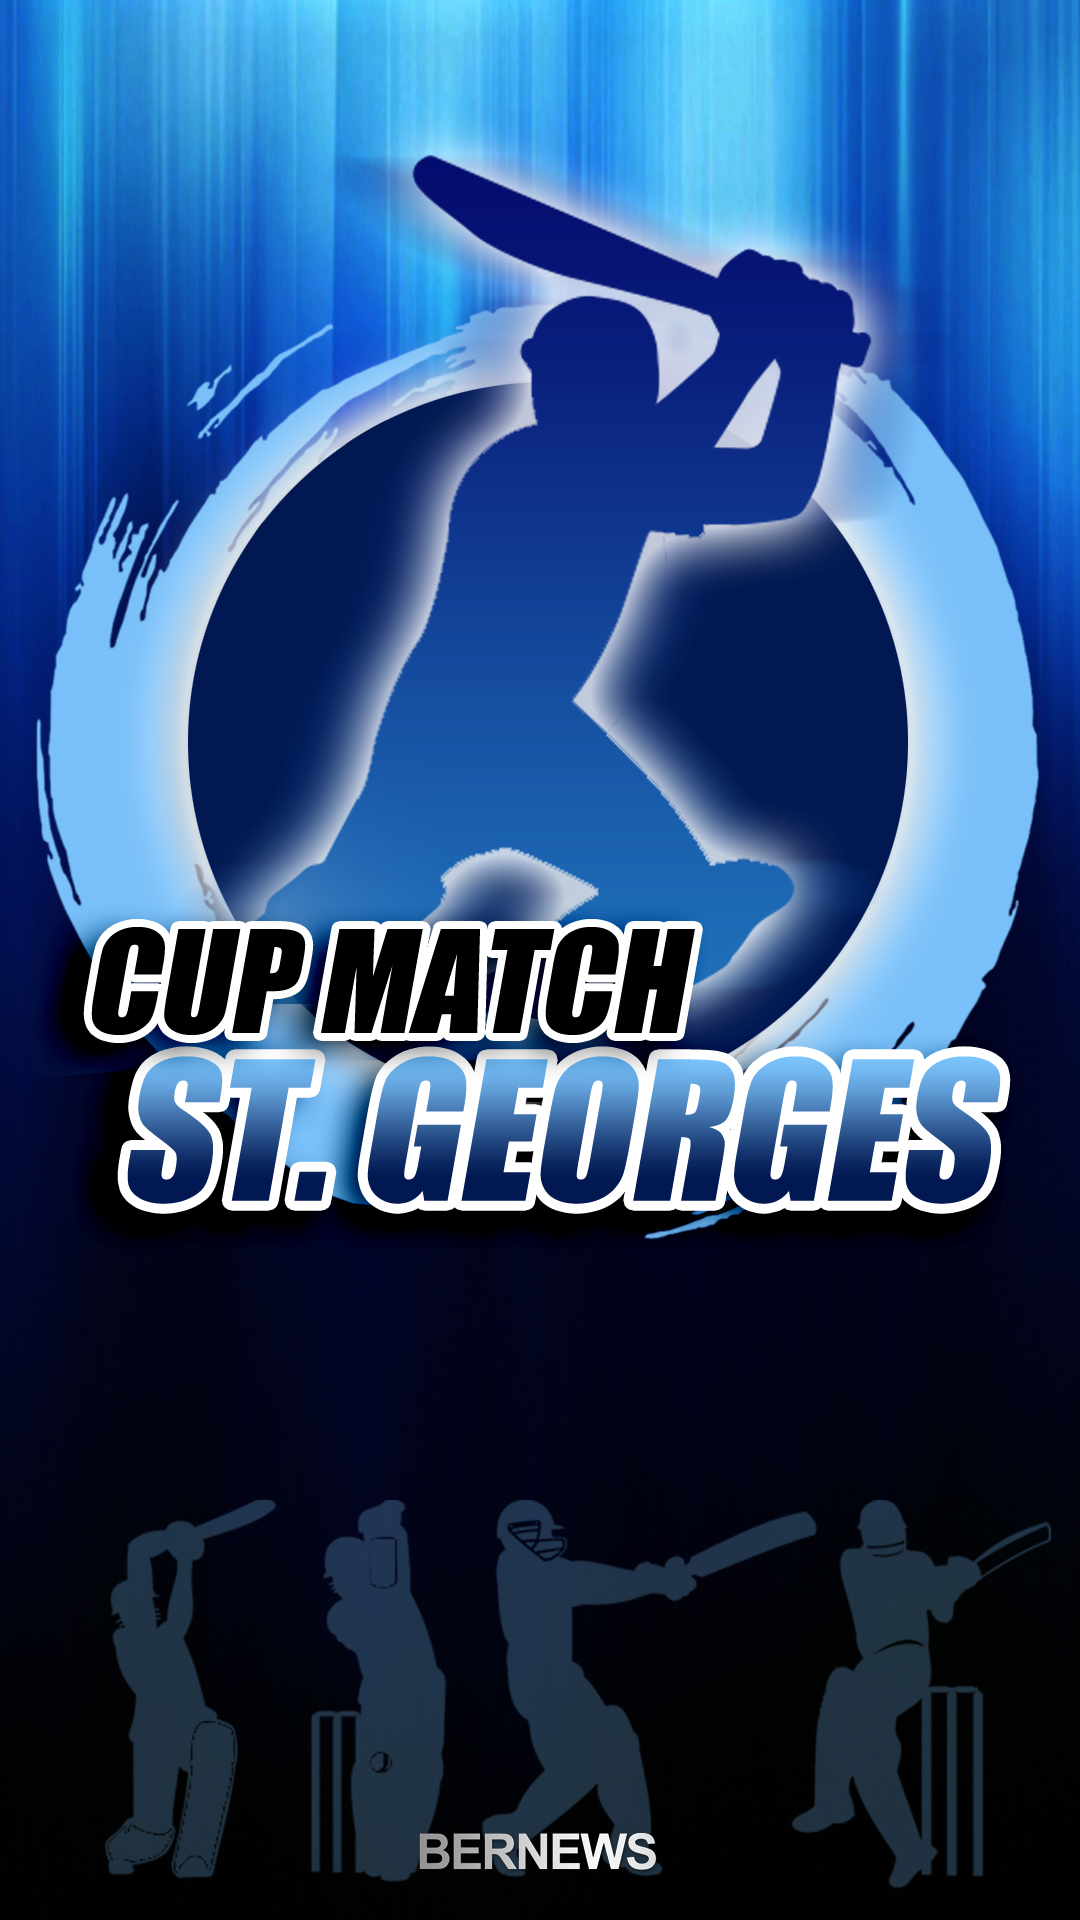 Bermuda free Cup Match iphone wallpaper graphics (1) St Georges